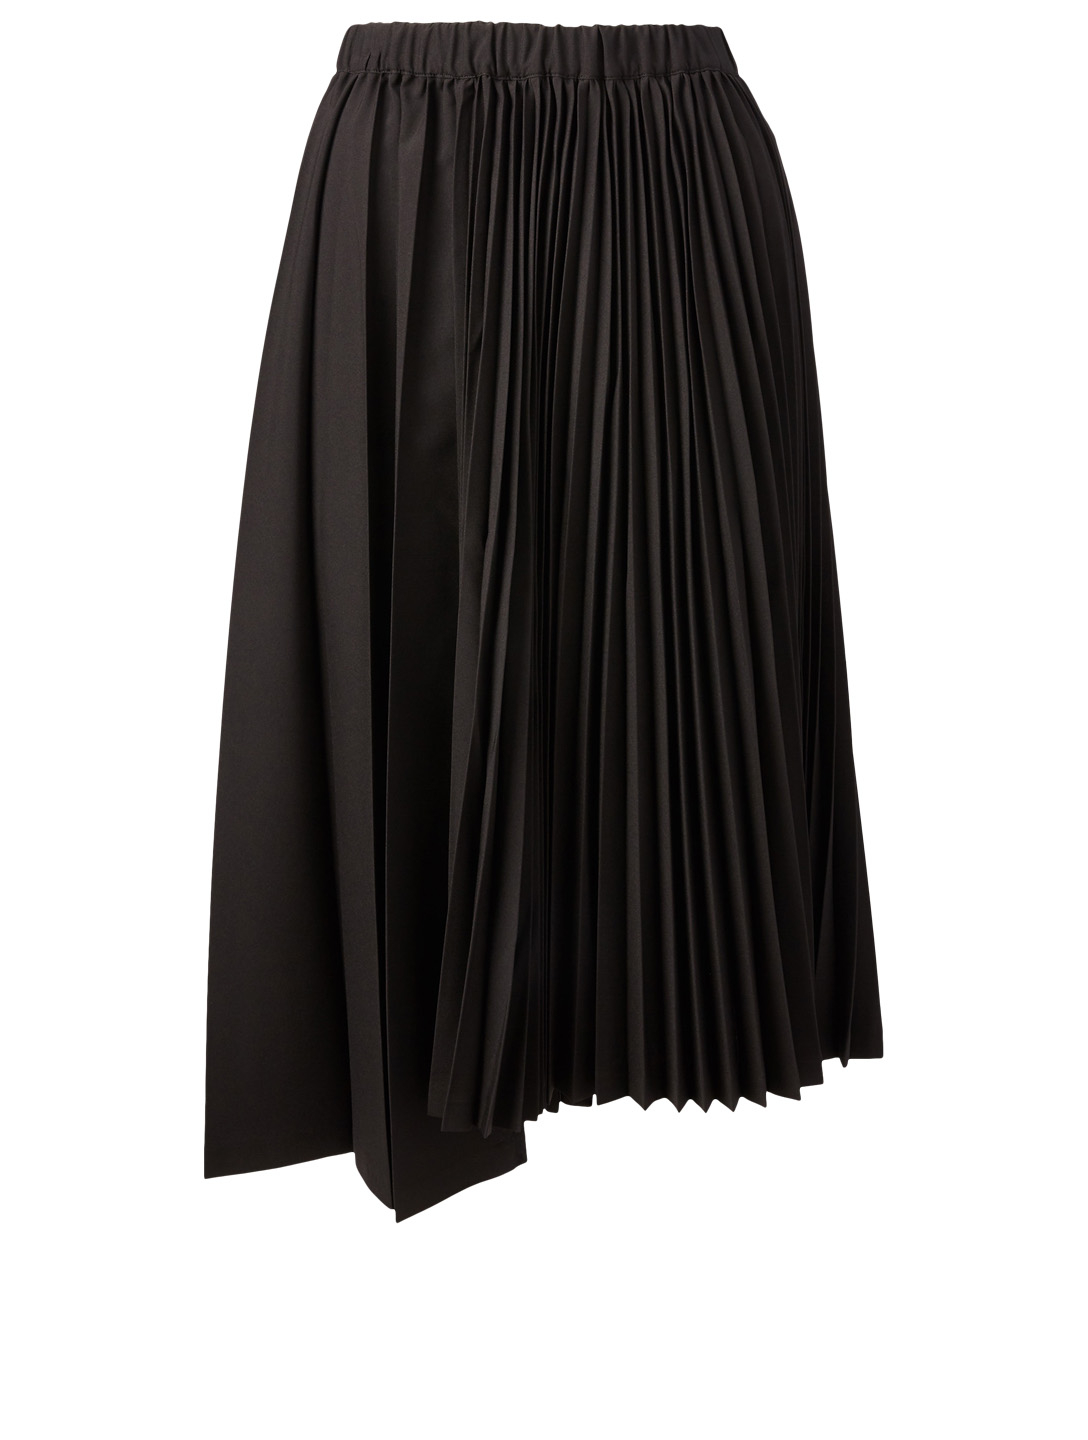 COMME DES GARÇONS BLACK Pleated Midi Skirt Women's Black